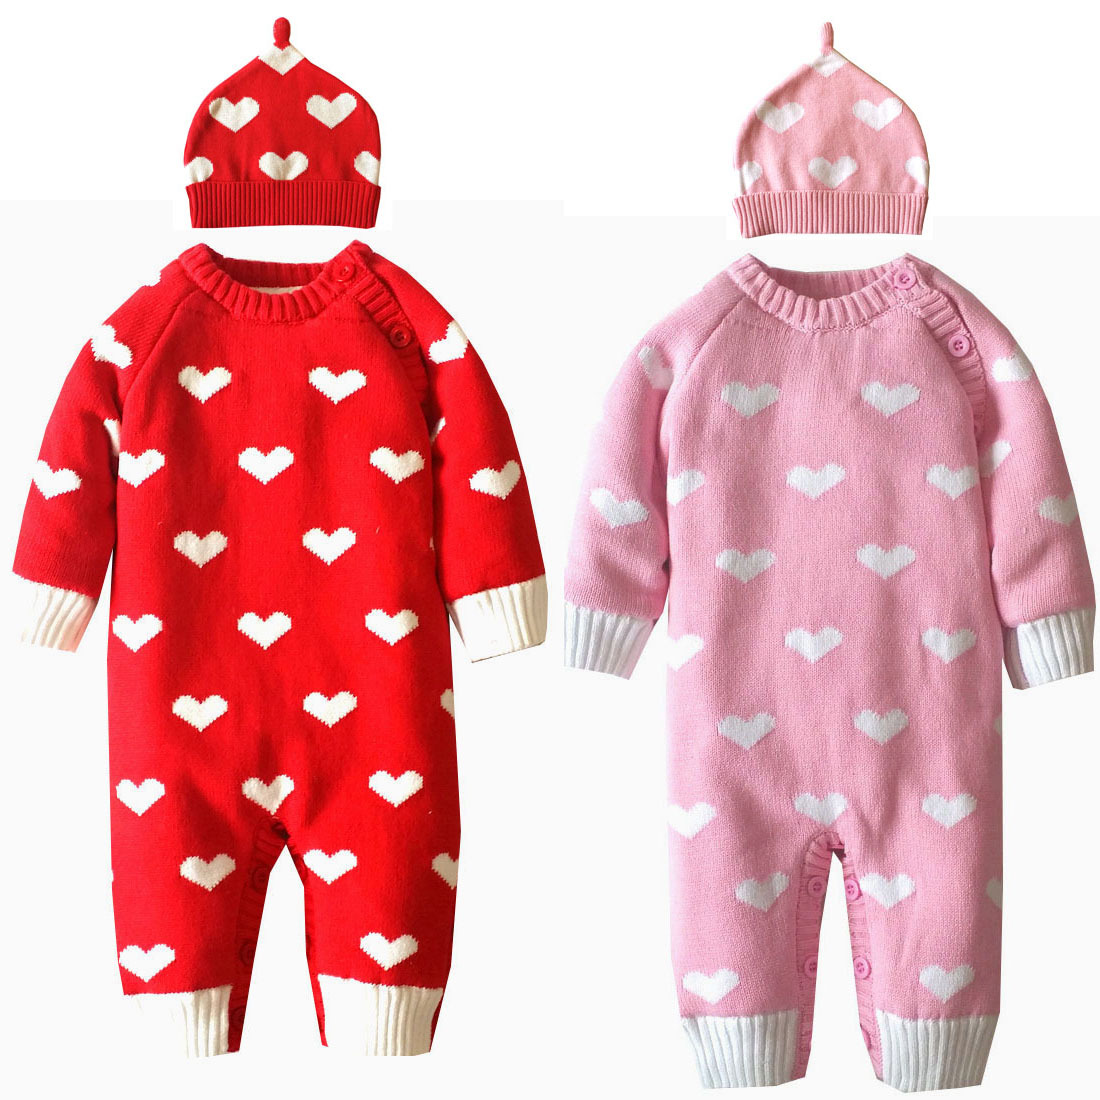 Baby Rompers Winter Thick Climbing Clothes Newborn Boy Girls Warm Romper Knitted Sweater Christmas Heart Hooded Outwear with Hat<br>